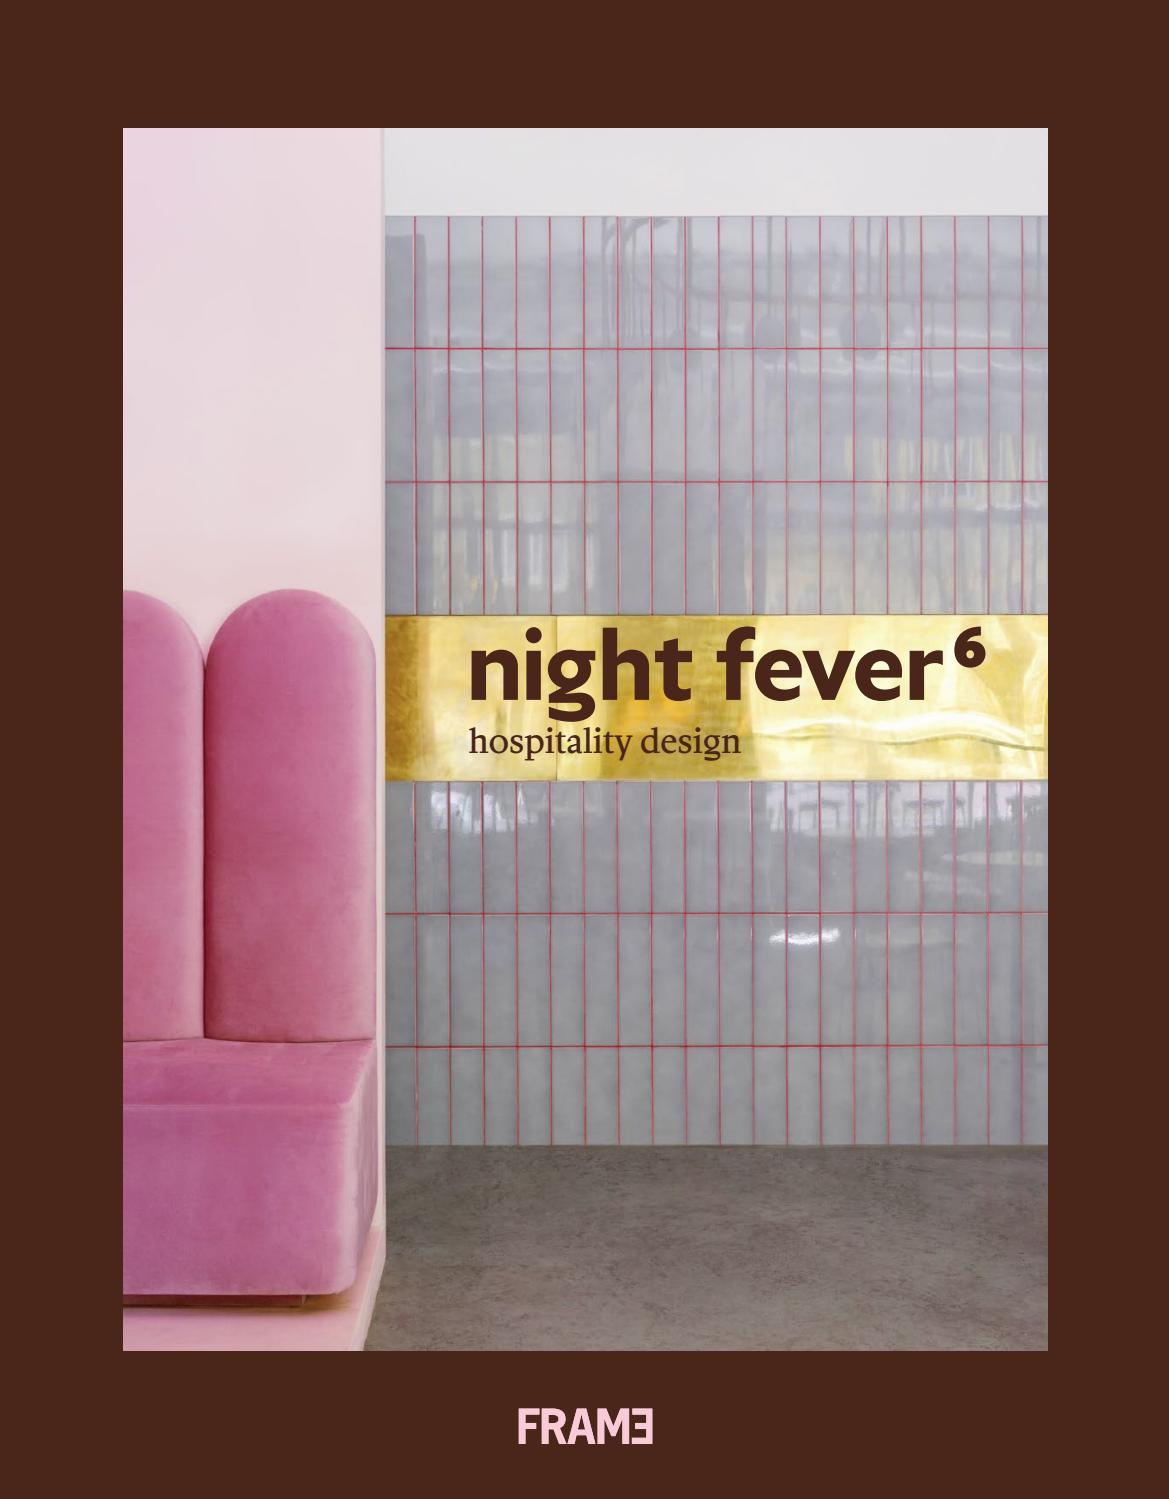 Preview night fever 6 by frame publishers issuu